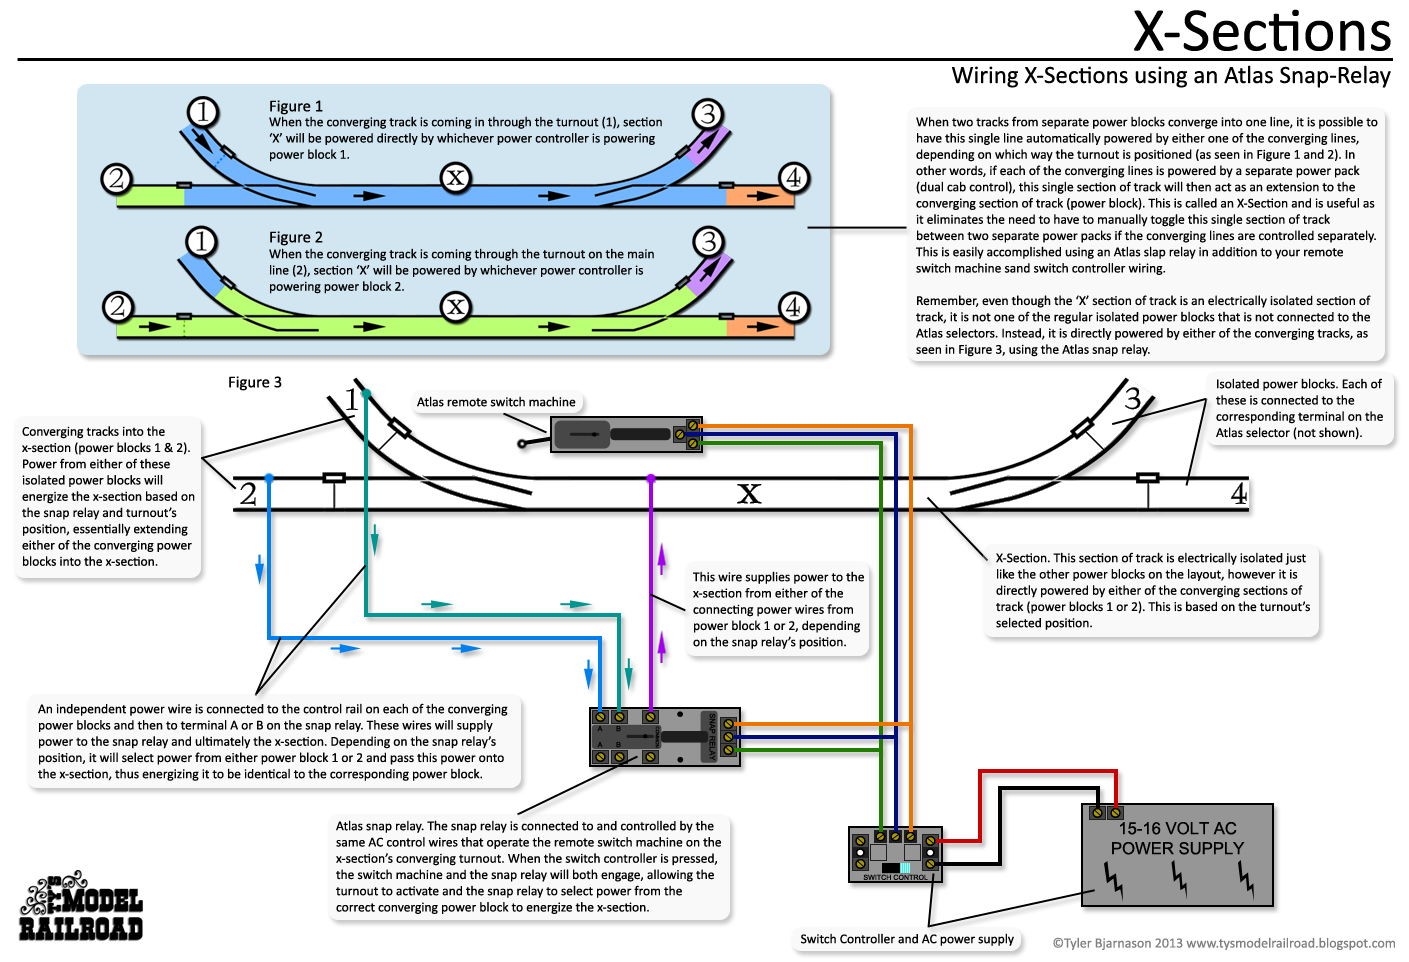 Tys model railroad wiring diagrams how to wire an x section using an atlas snap relay and existing remote switch cheapraybanclubmaster Gallery